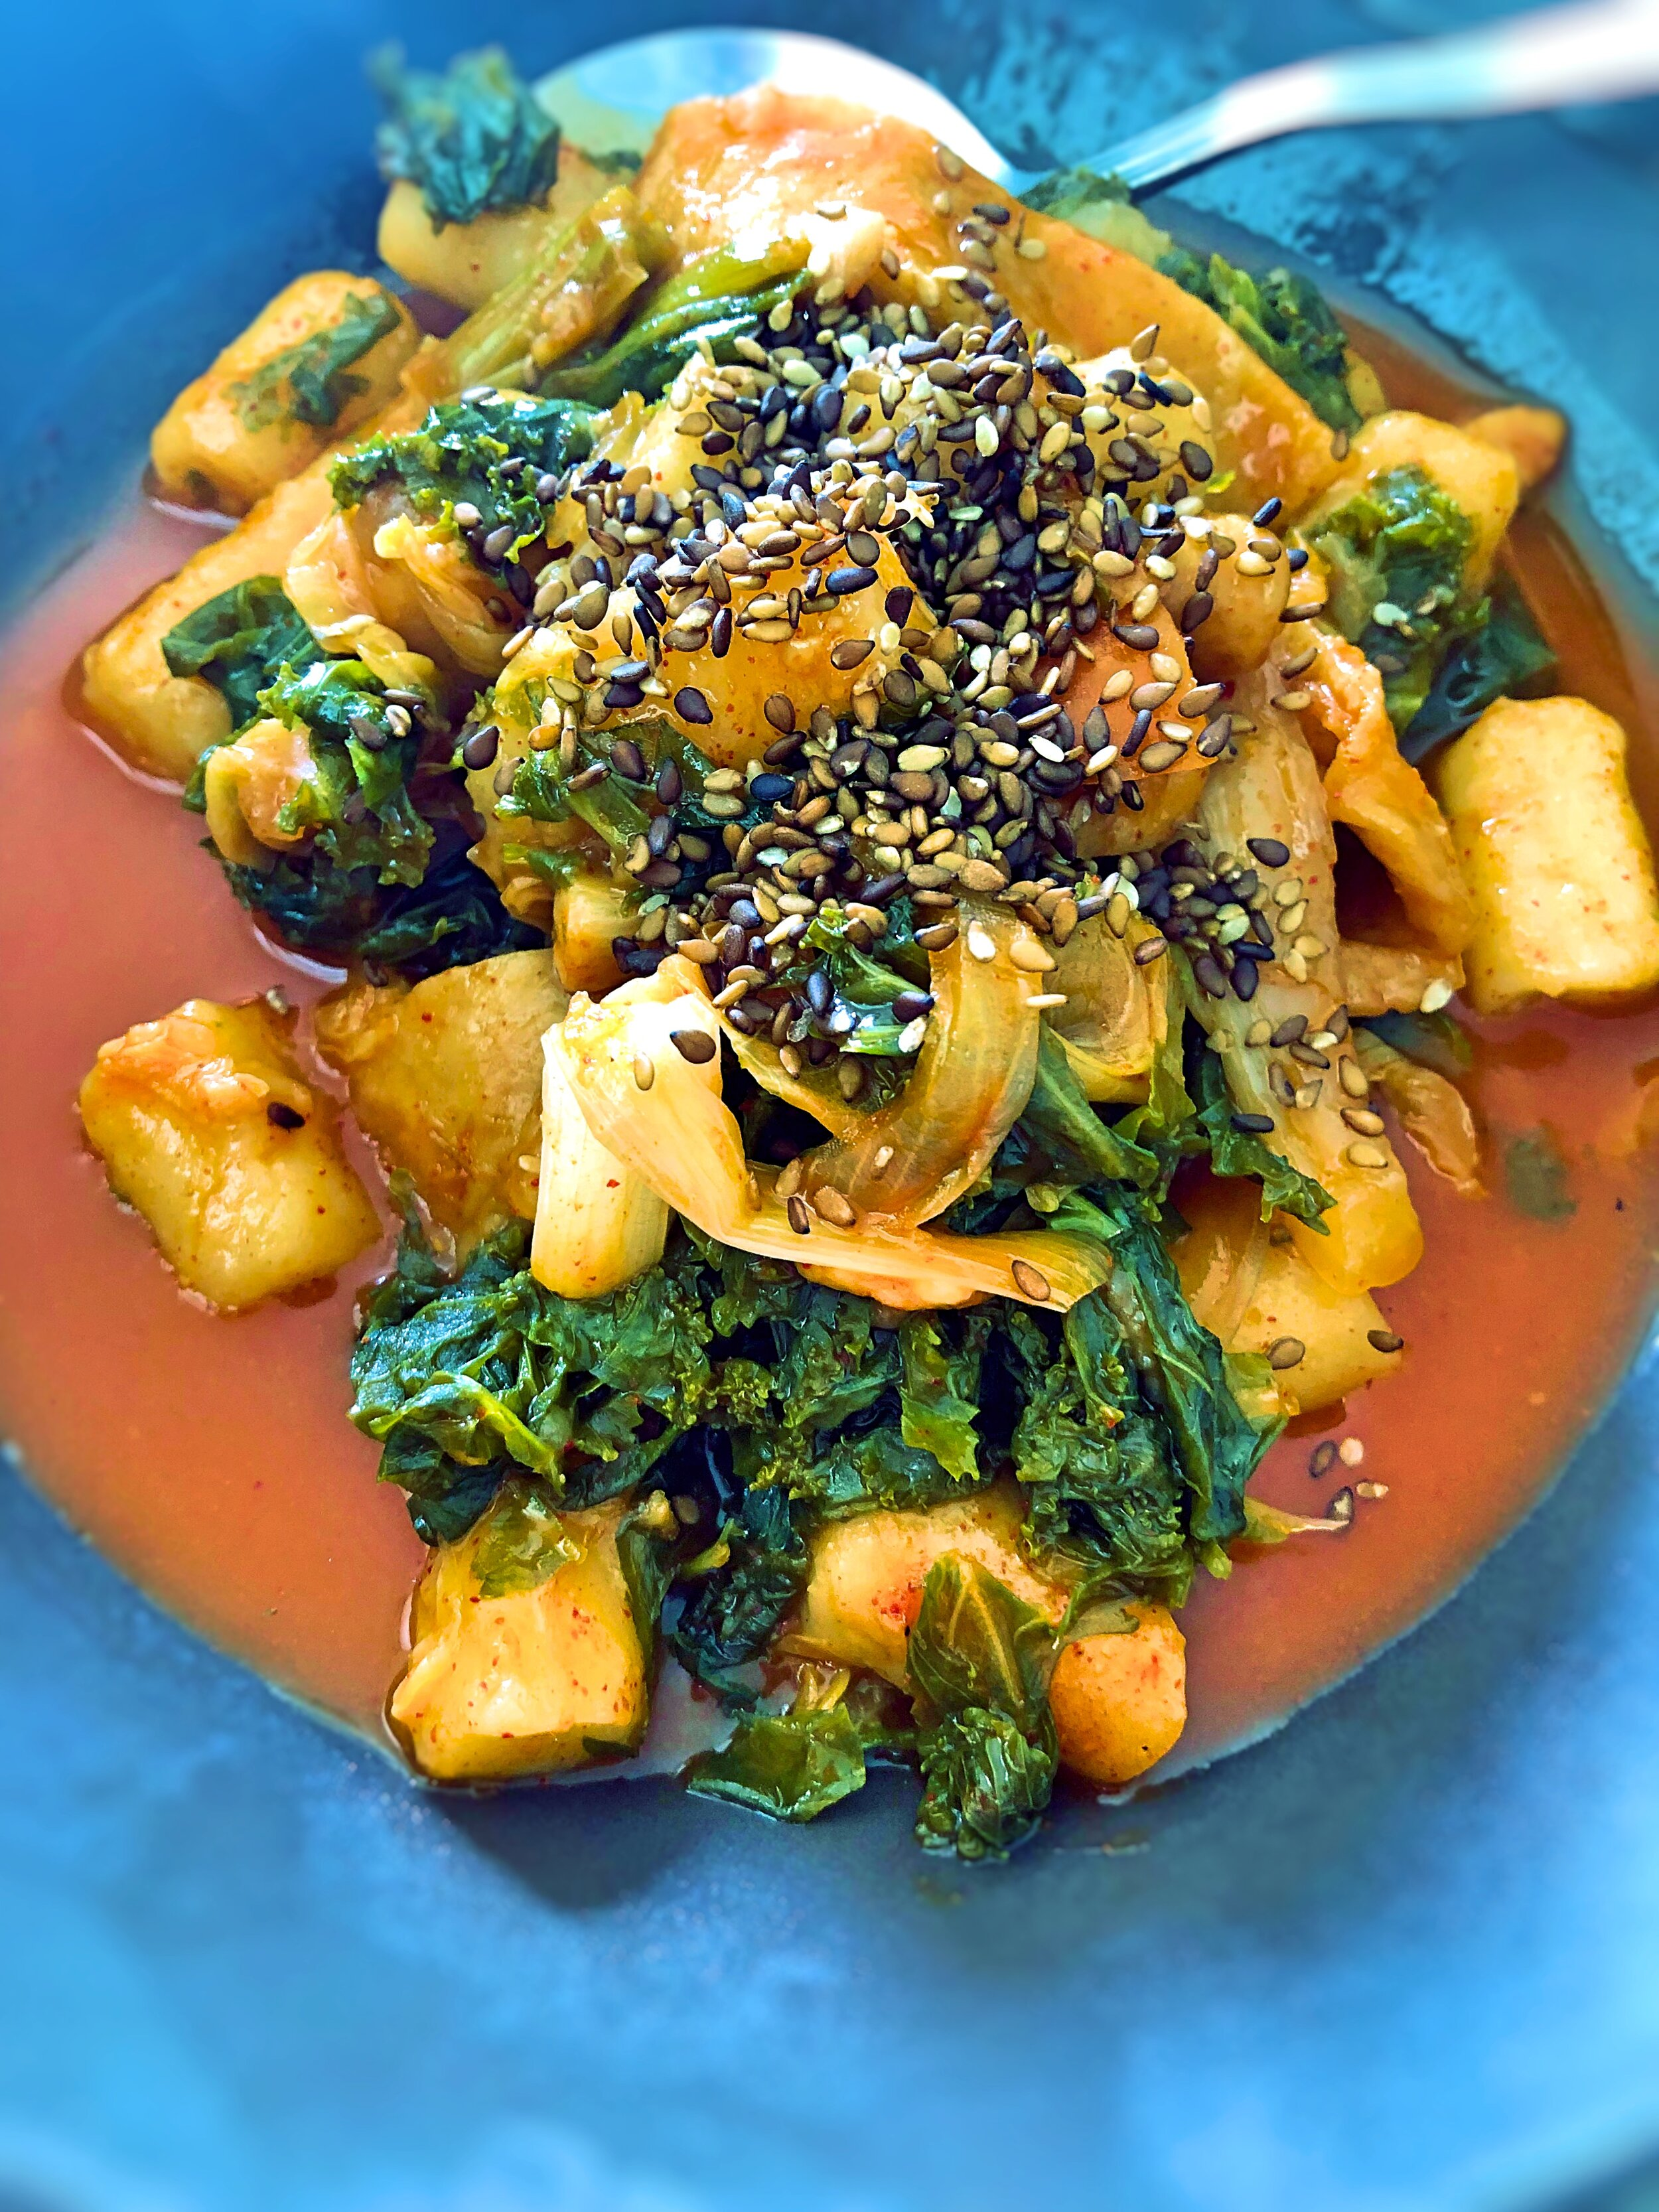 Ingredients: Soft or semi-firm Tofu, Western and Chinese Kale, Sesame Seeds, Onions, Sweet chilli sauce, water, S+P, Lime, Cooking oil,  Method: Start by creating the base of this simply soup by caramelising the onions to bring out their natural sweetness, add in the washed chopped greens; the sweet chilli sauce and water - balancing it well with the spices and acids, bring it all to the boil then simmer on low. Add in the soft tofu and gently stir. Top with the crunchy sesame seeds. This dish can also be served over rice or noodles. (you can use gluten free soy sauce or vegan fish sauce here as well)